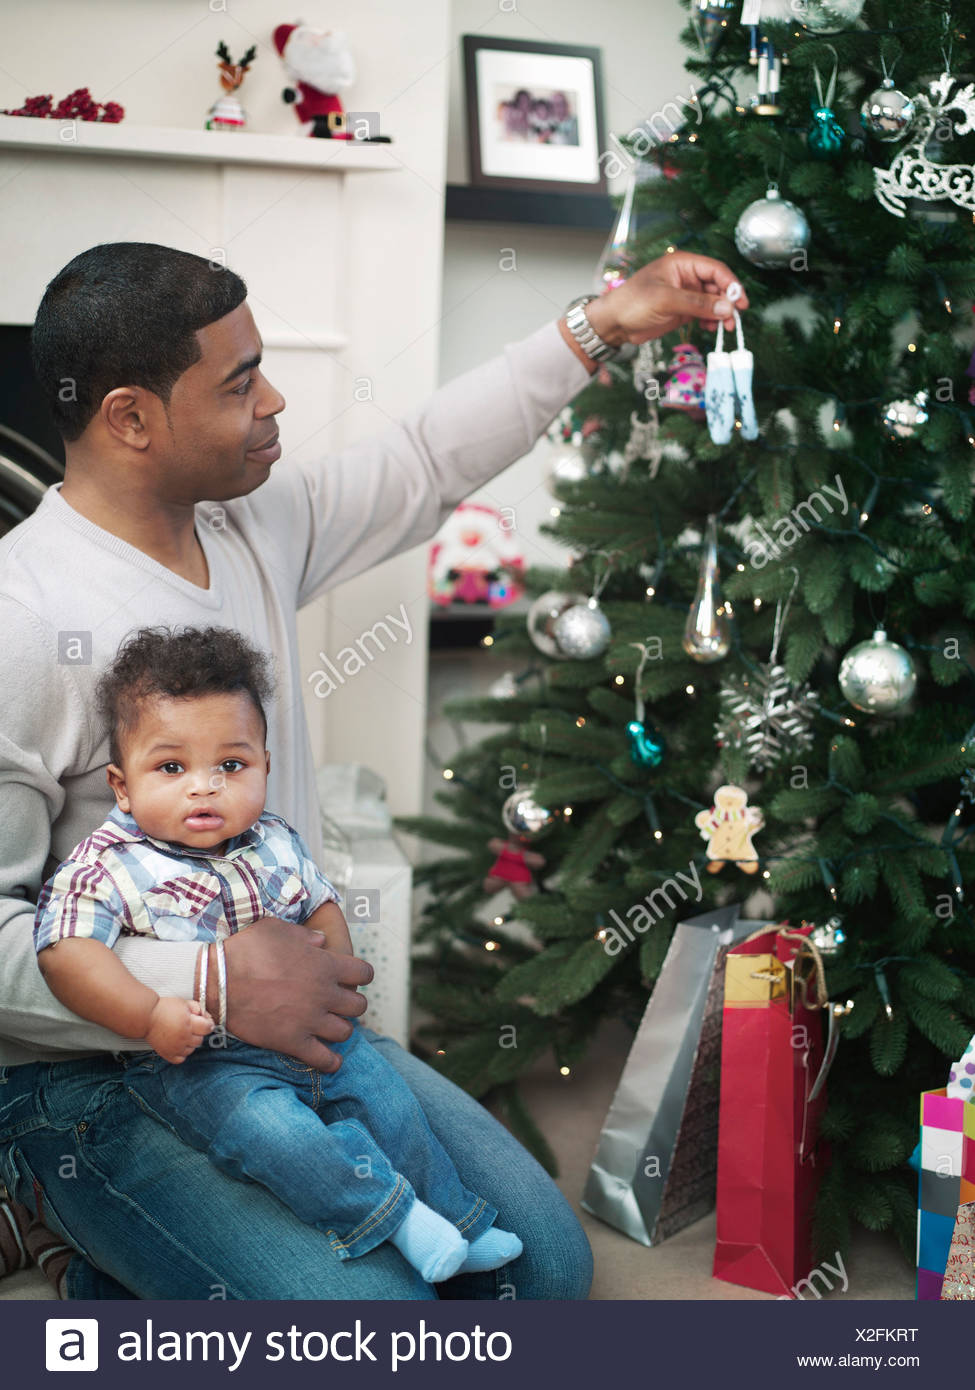 Father And Baby Boy Decorating Christmas Tree Stock Photo Alamy